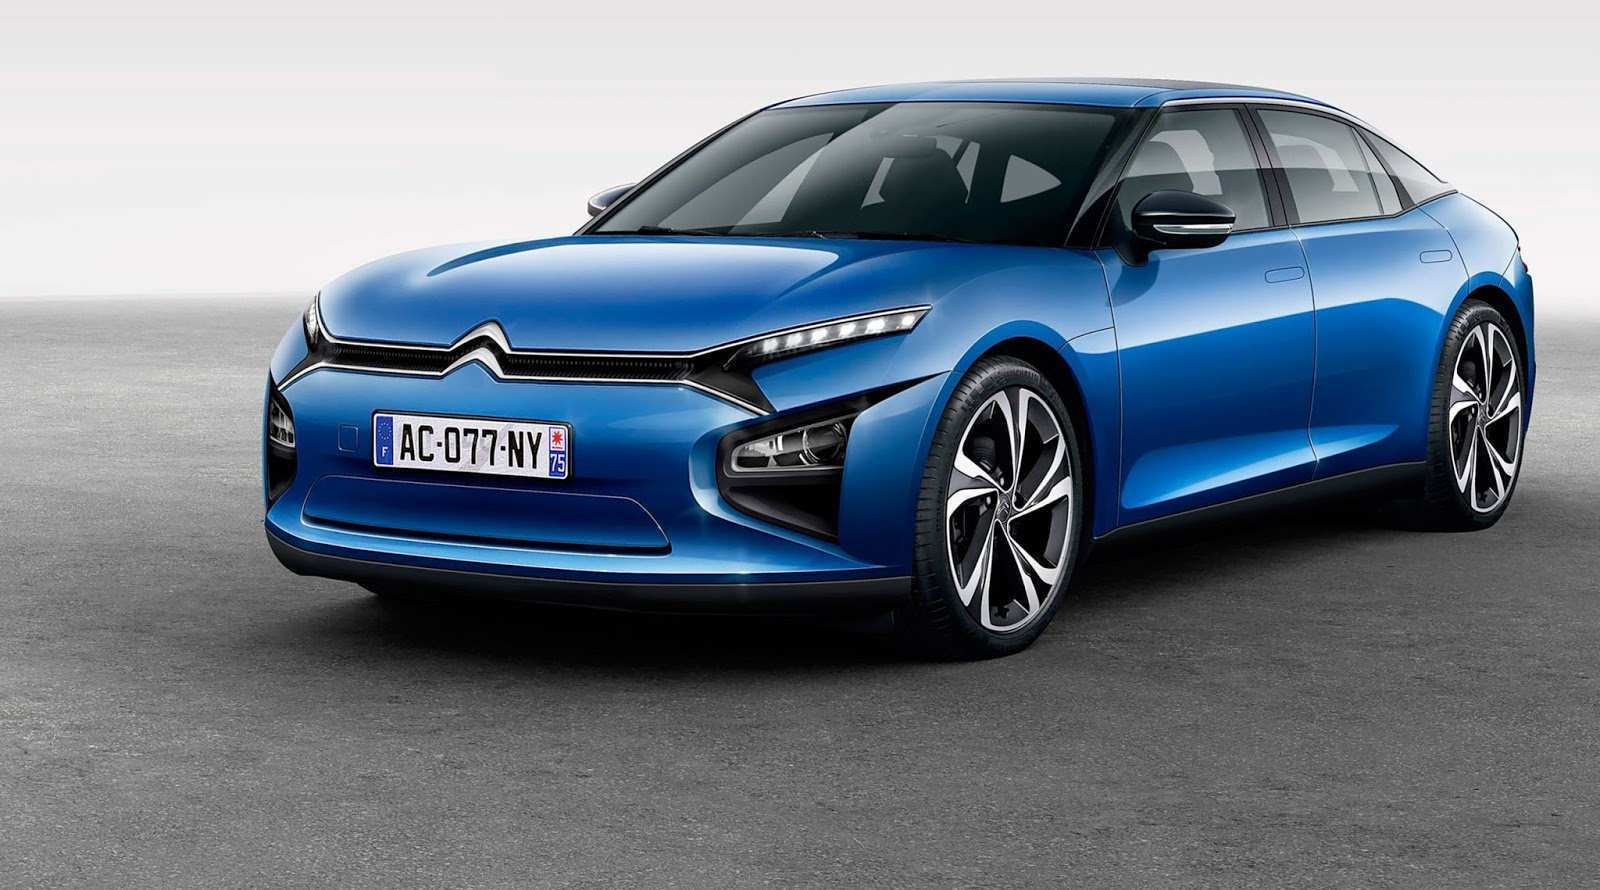 21 Concept of 2020 Citroen C5 2018 Specs for 2020 Citroen C5 2018